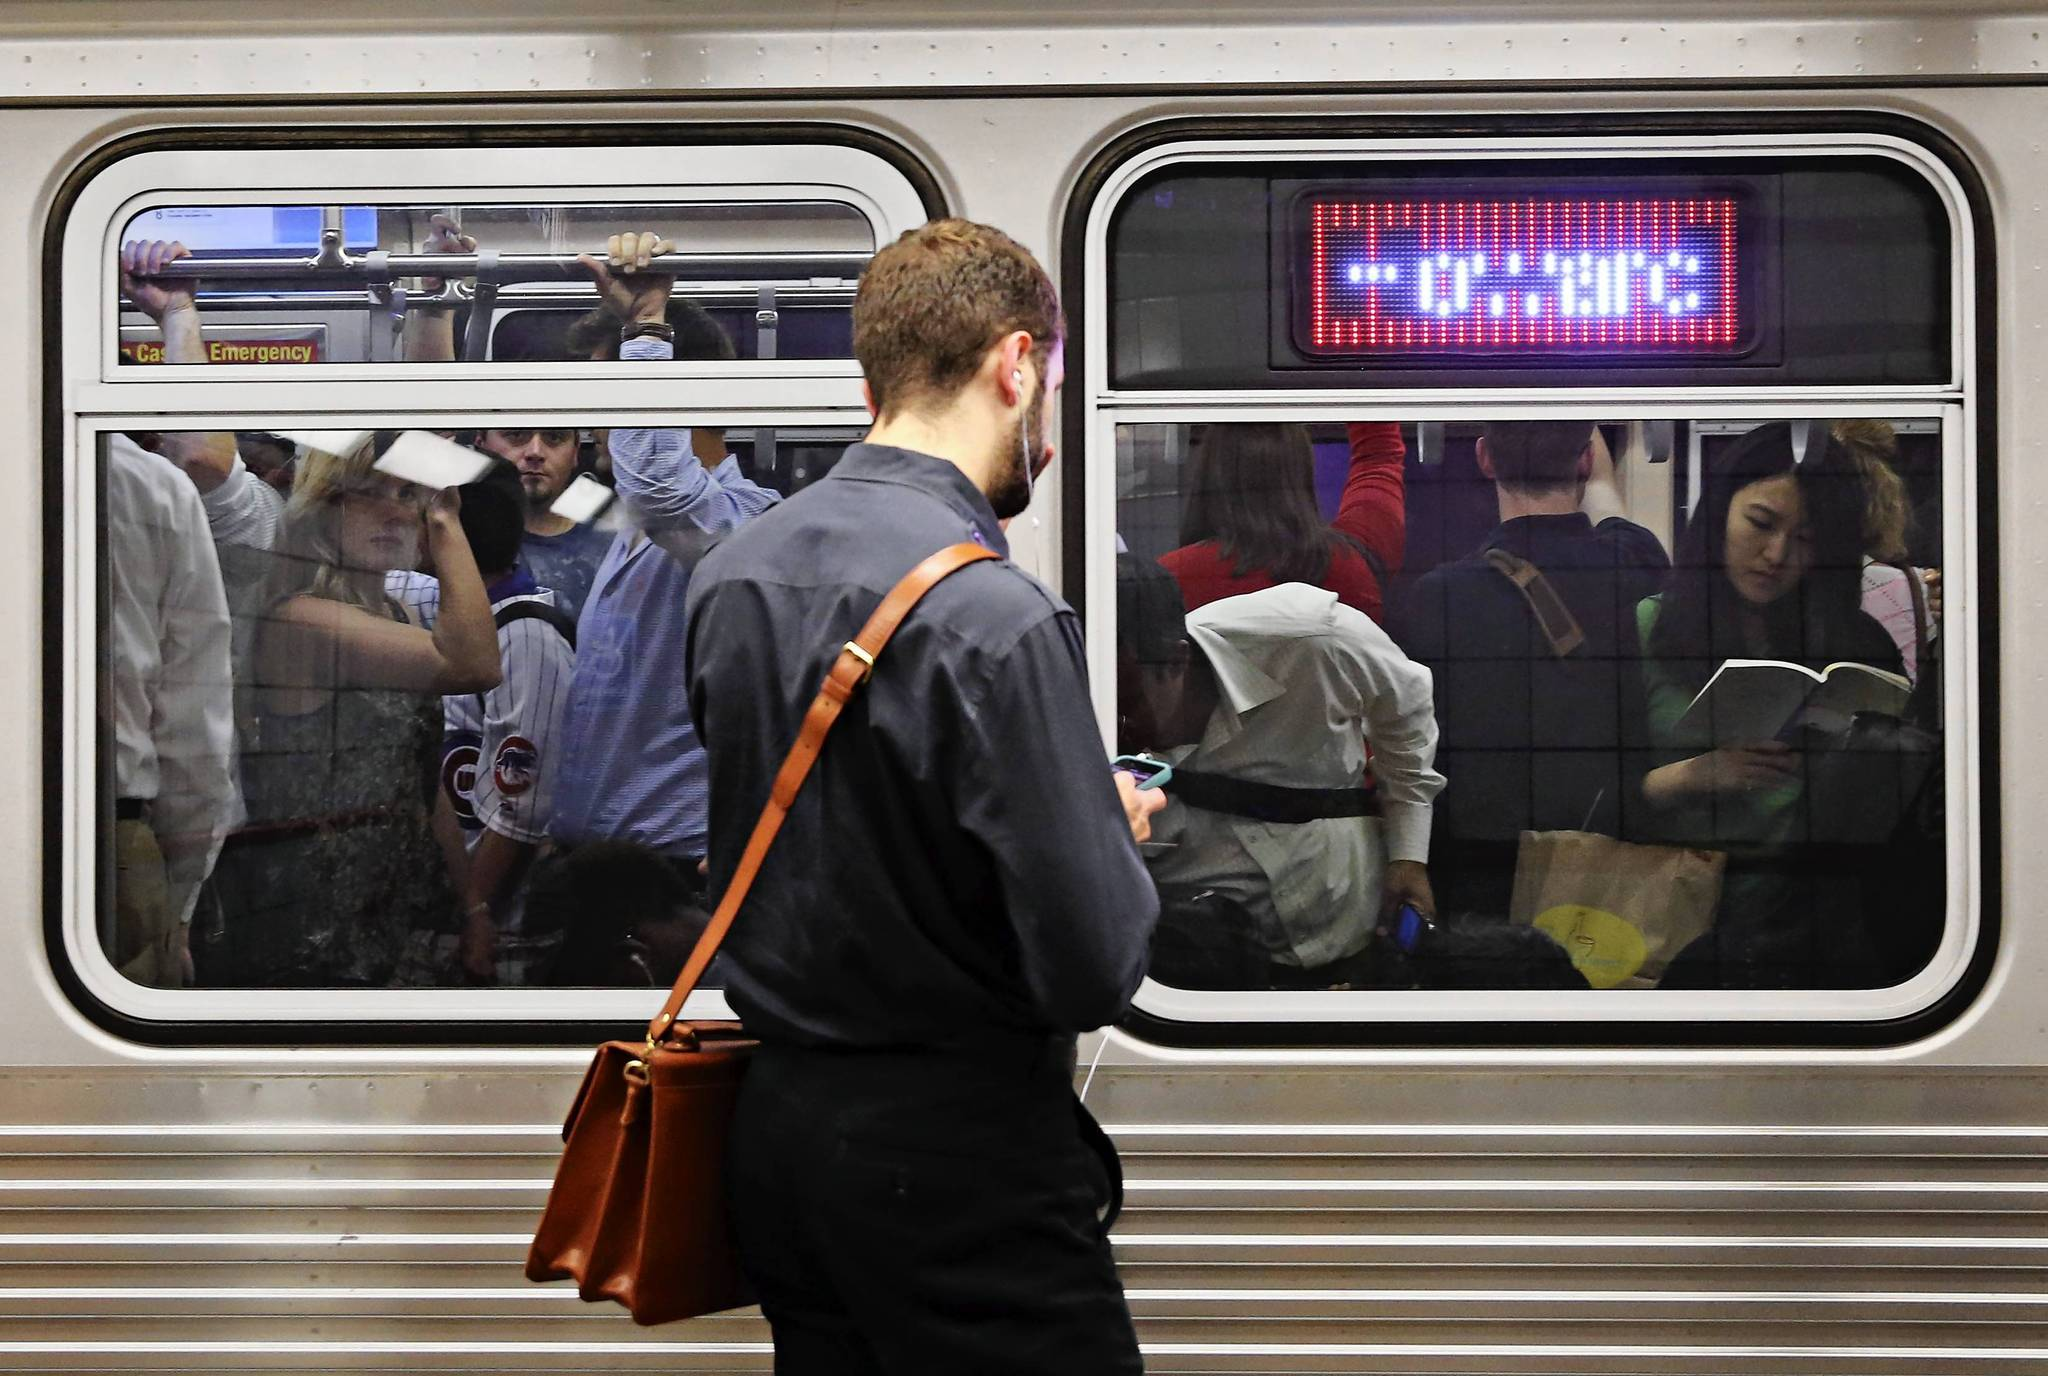 Riders on CTA Red and Blue Line subways will see upgraded 4G wireless service next year, the agency will announce on Thursday.